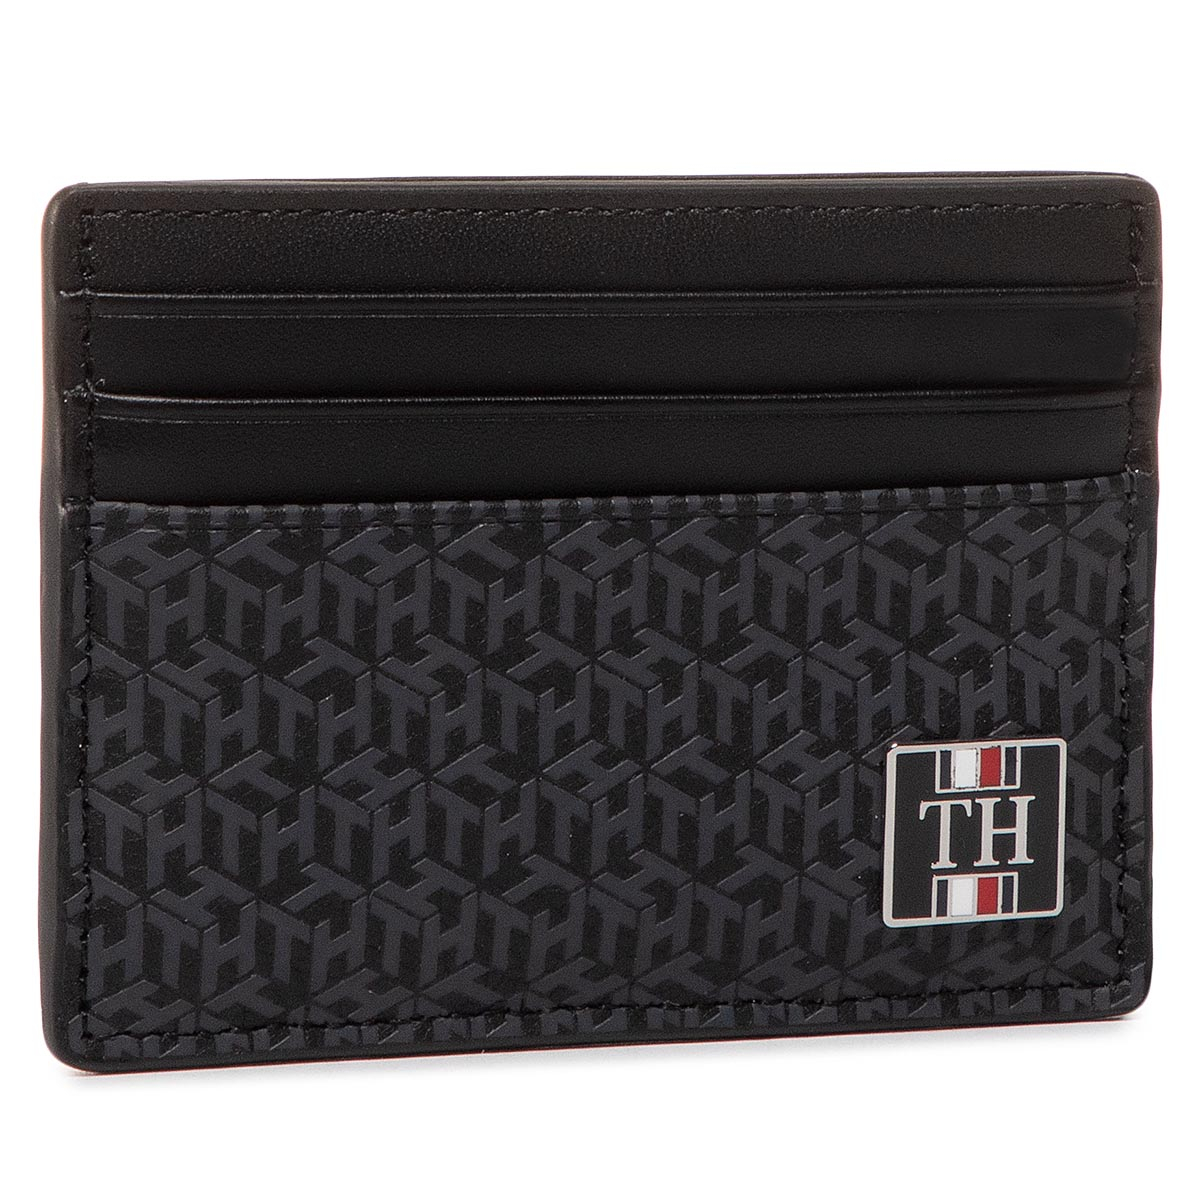 Etui pentru carduri TOMMY HILFIGER - Th Monogram Cc Holder AM0AM05849 BDS